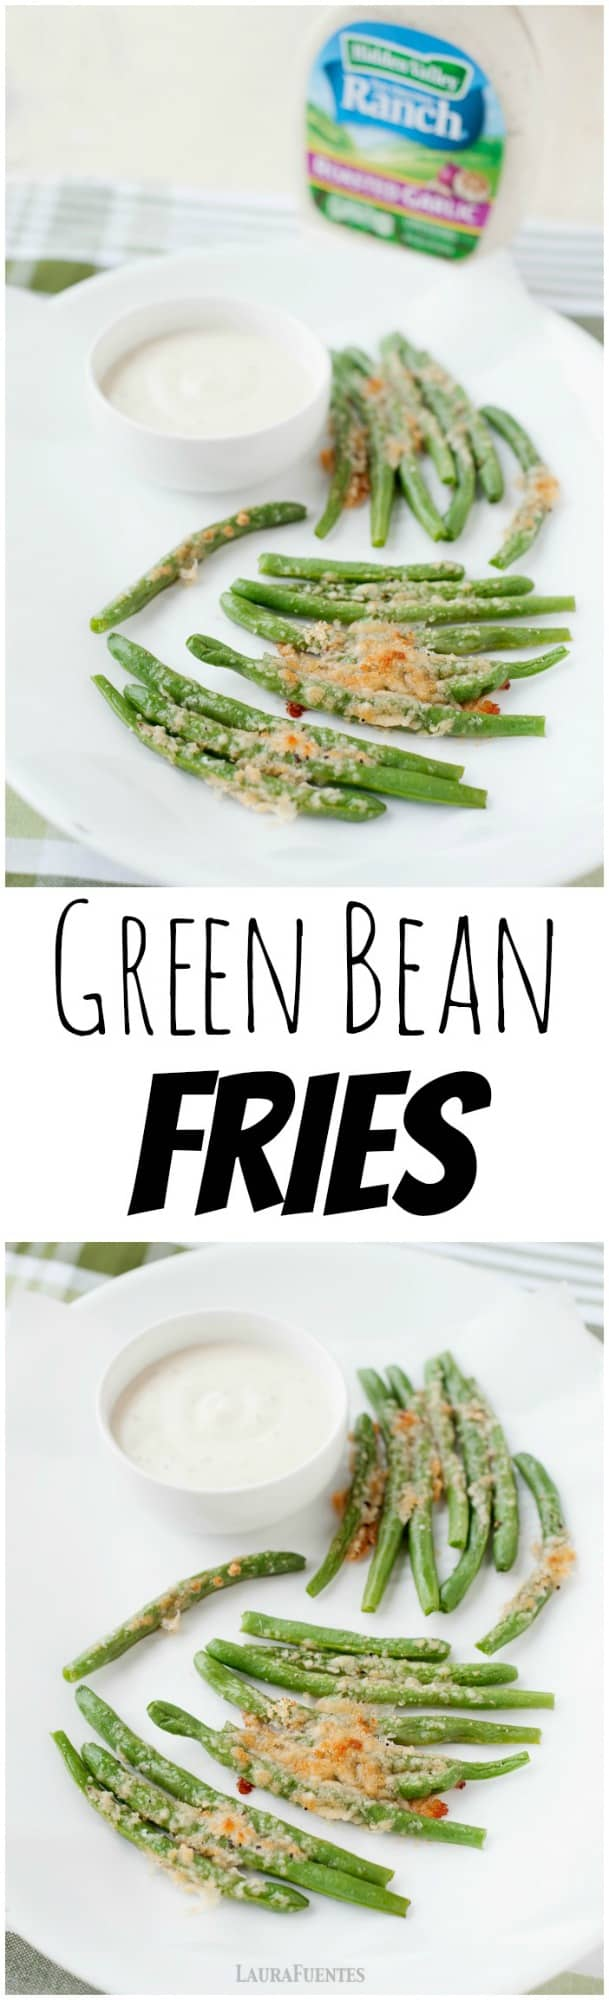 These parmesan green bean fries come together in 20 minutes and they are baked, not fried!